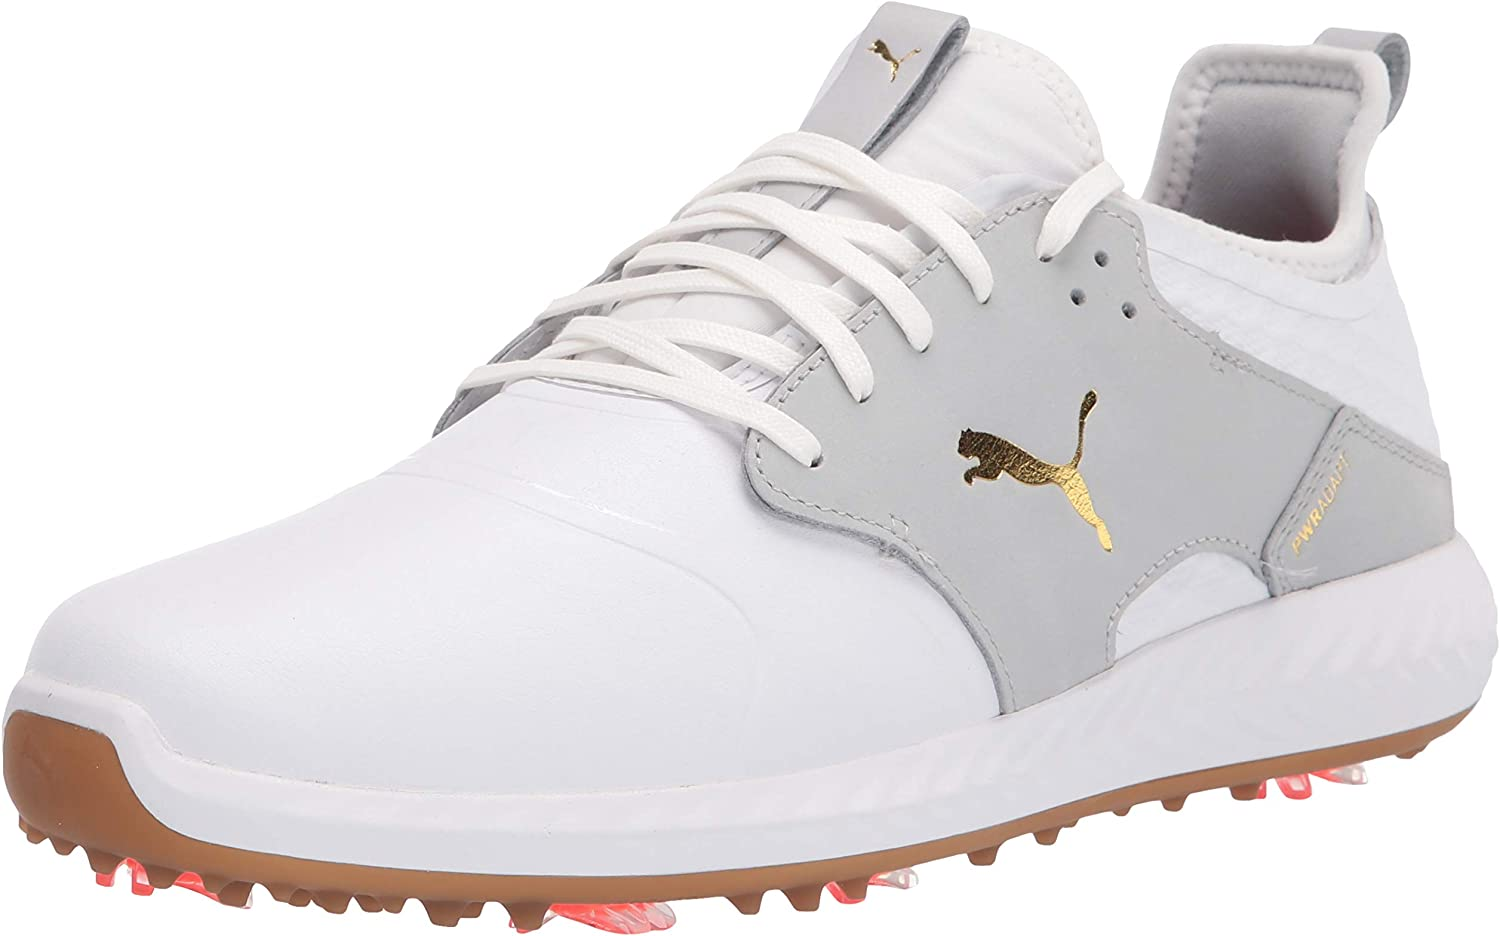 PUMA Men's Ignite Pwradapt Caged Crafted Golf Shoe